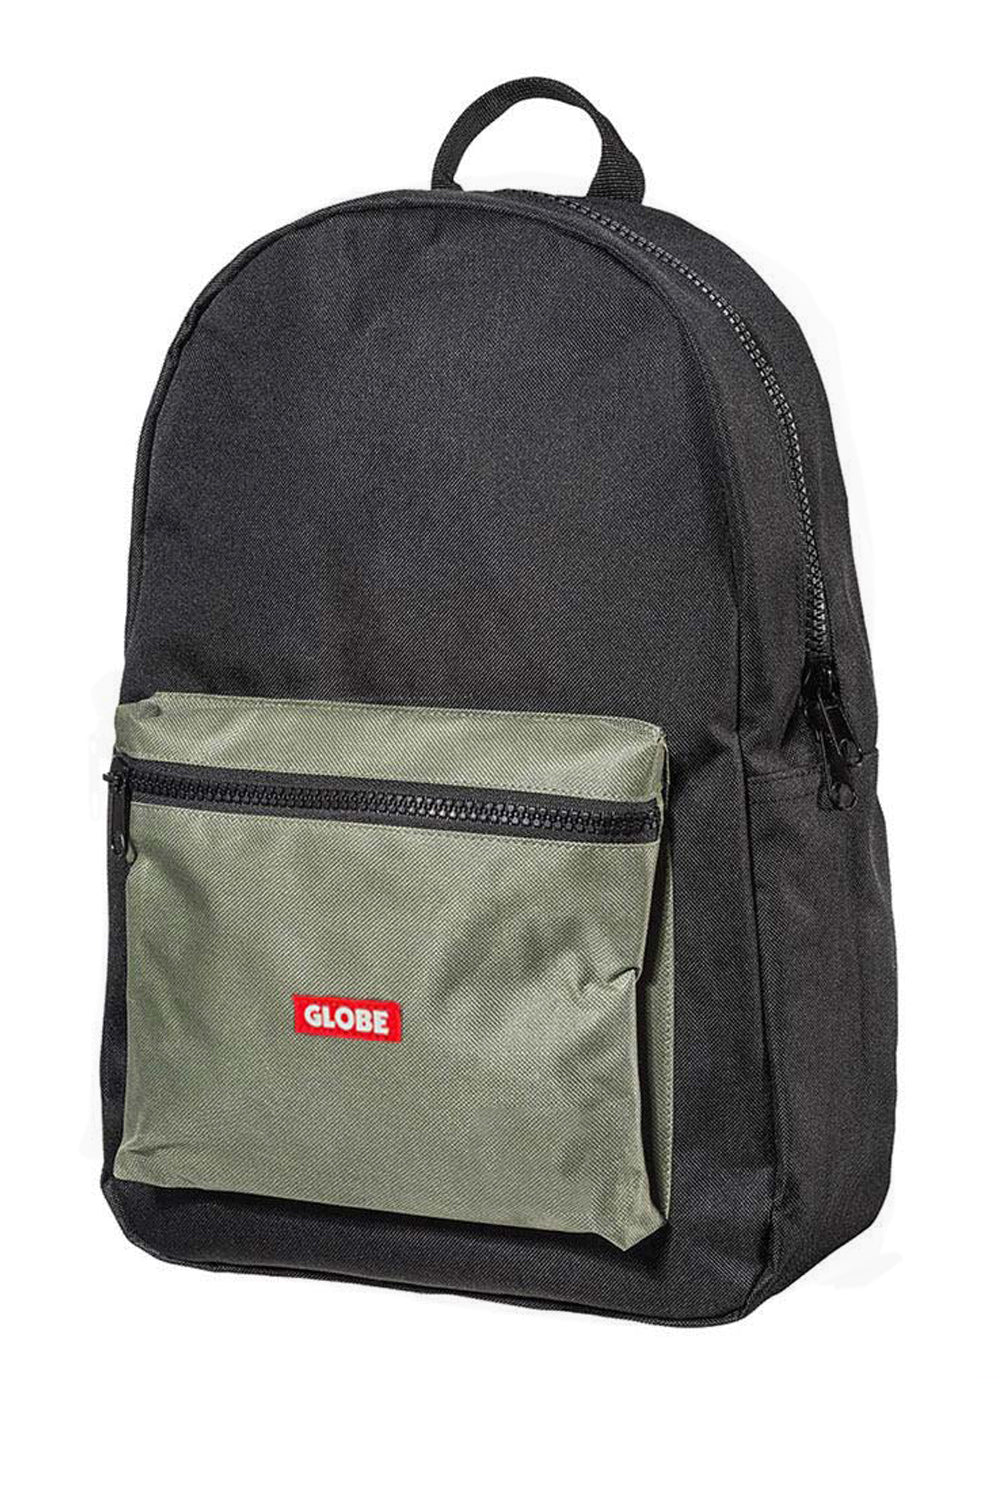 Globe Deluxe Backpack - Black Army